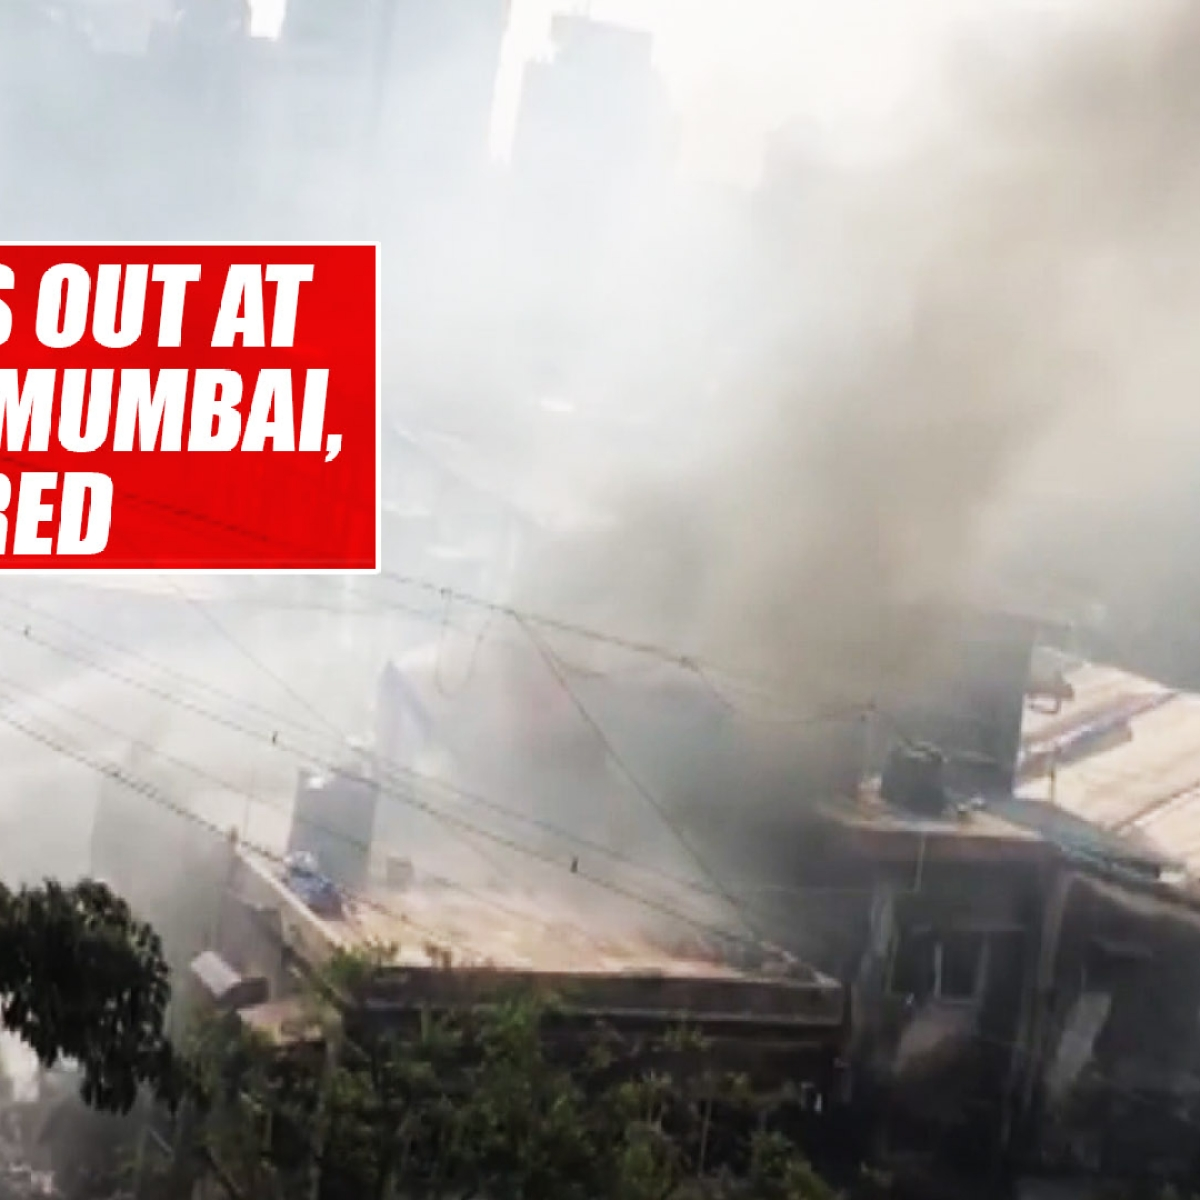 Fire breaks out at building in Mumbai, 5 injured